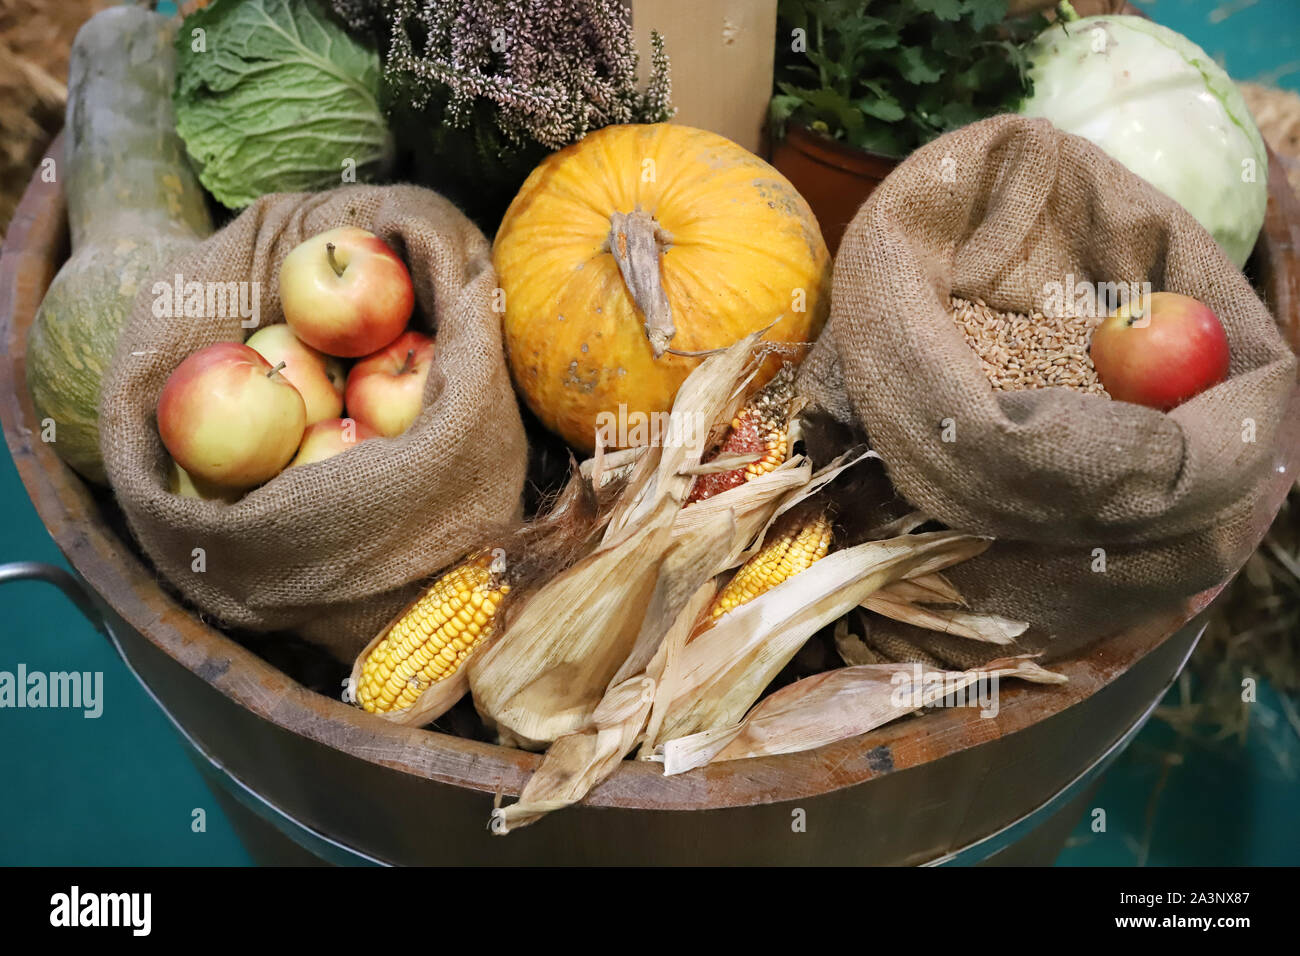 Group of various vegetables and fruits as an autumn background. Autumn foods products as a background. Healthy organic harvest fruits and vegetables a Stock Photo